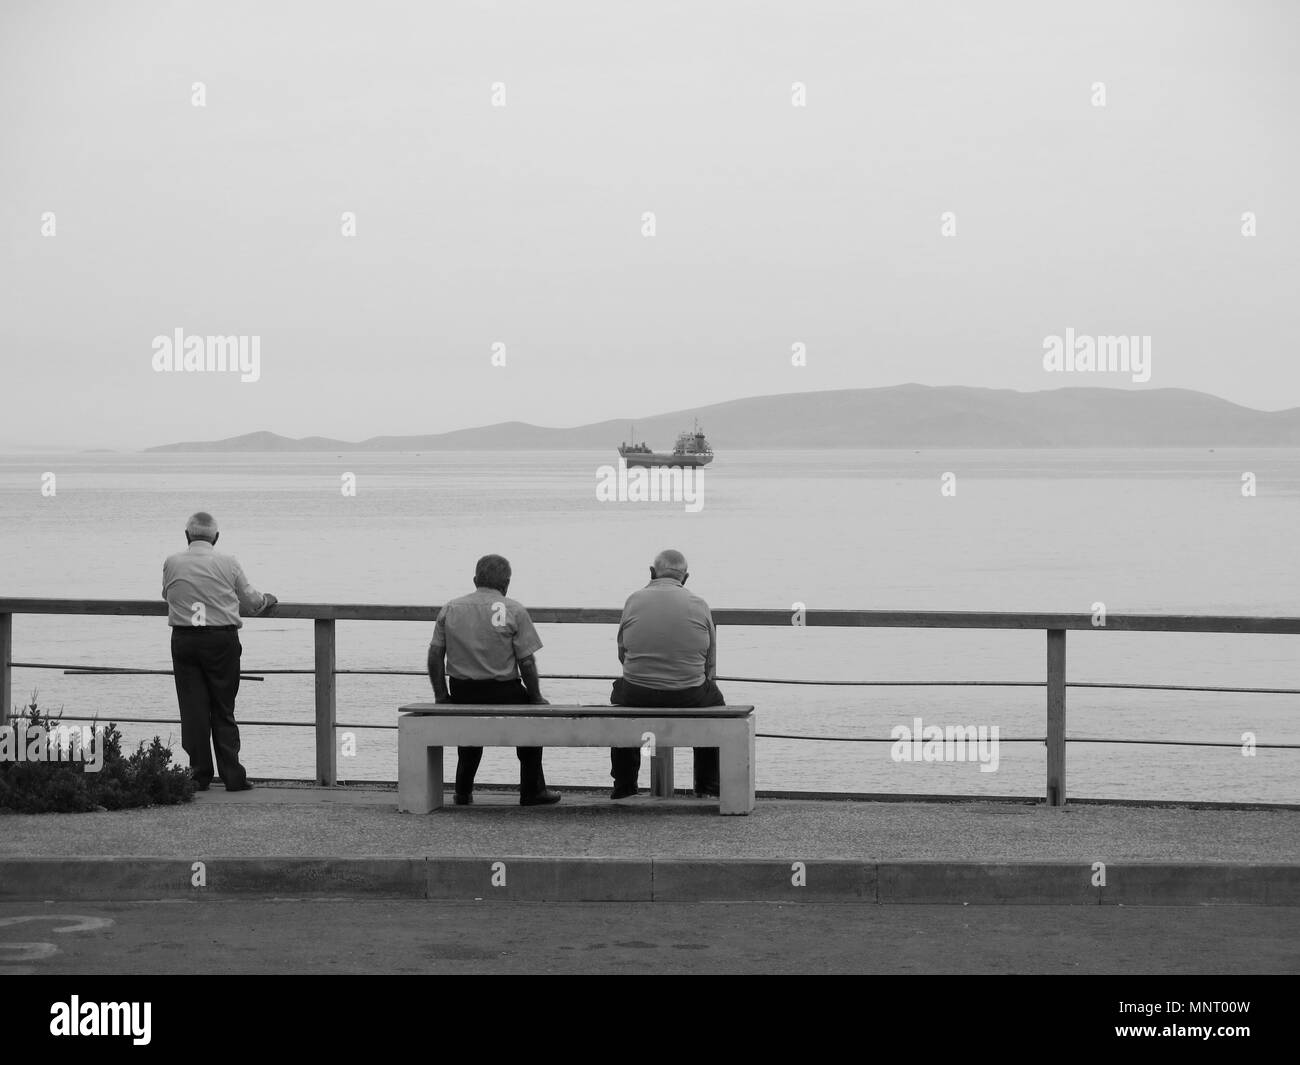 Elderly people looking at a ship from the promenade - Stock Image